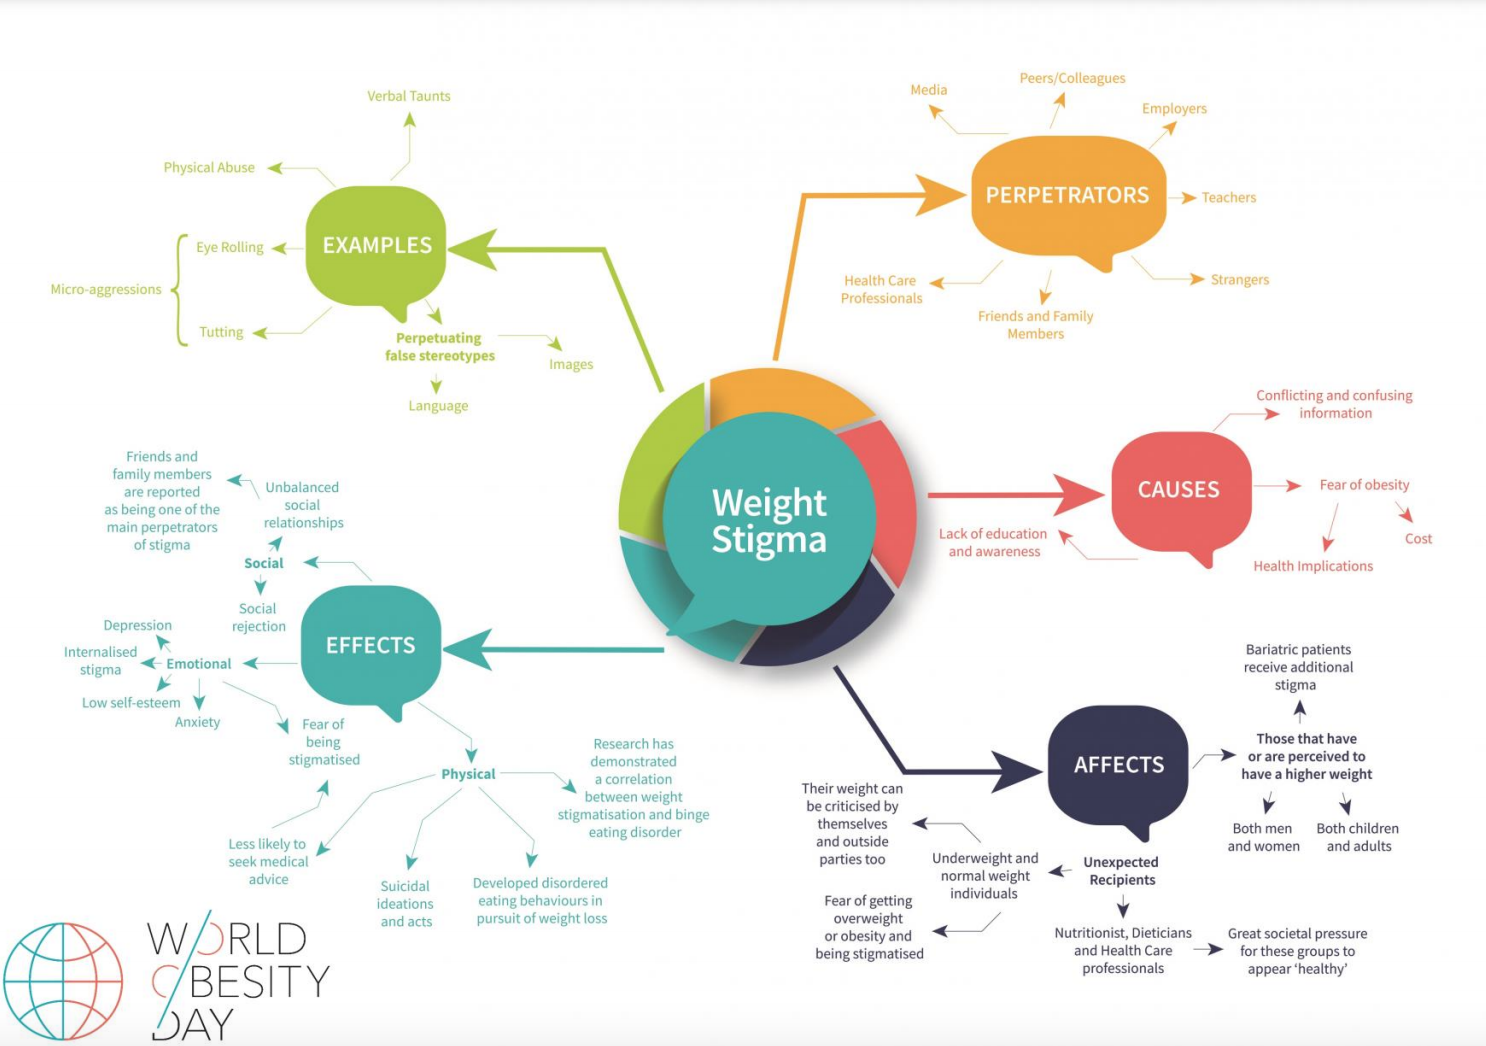 Diagram showing causes, effects, and examples of weight stigma